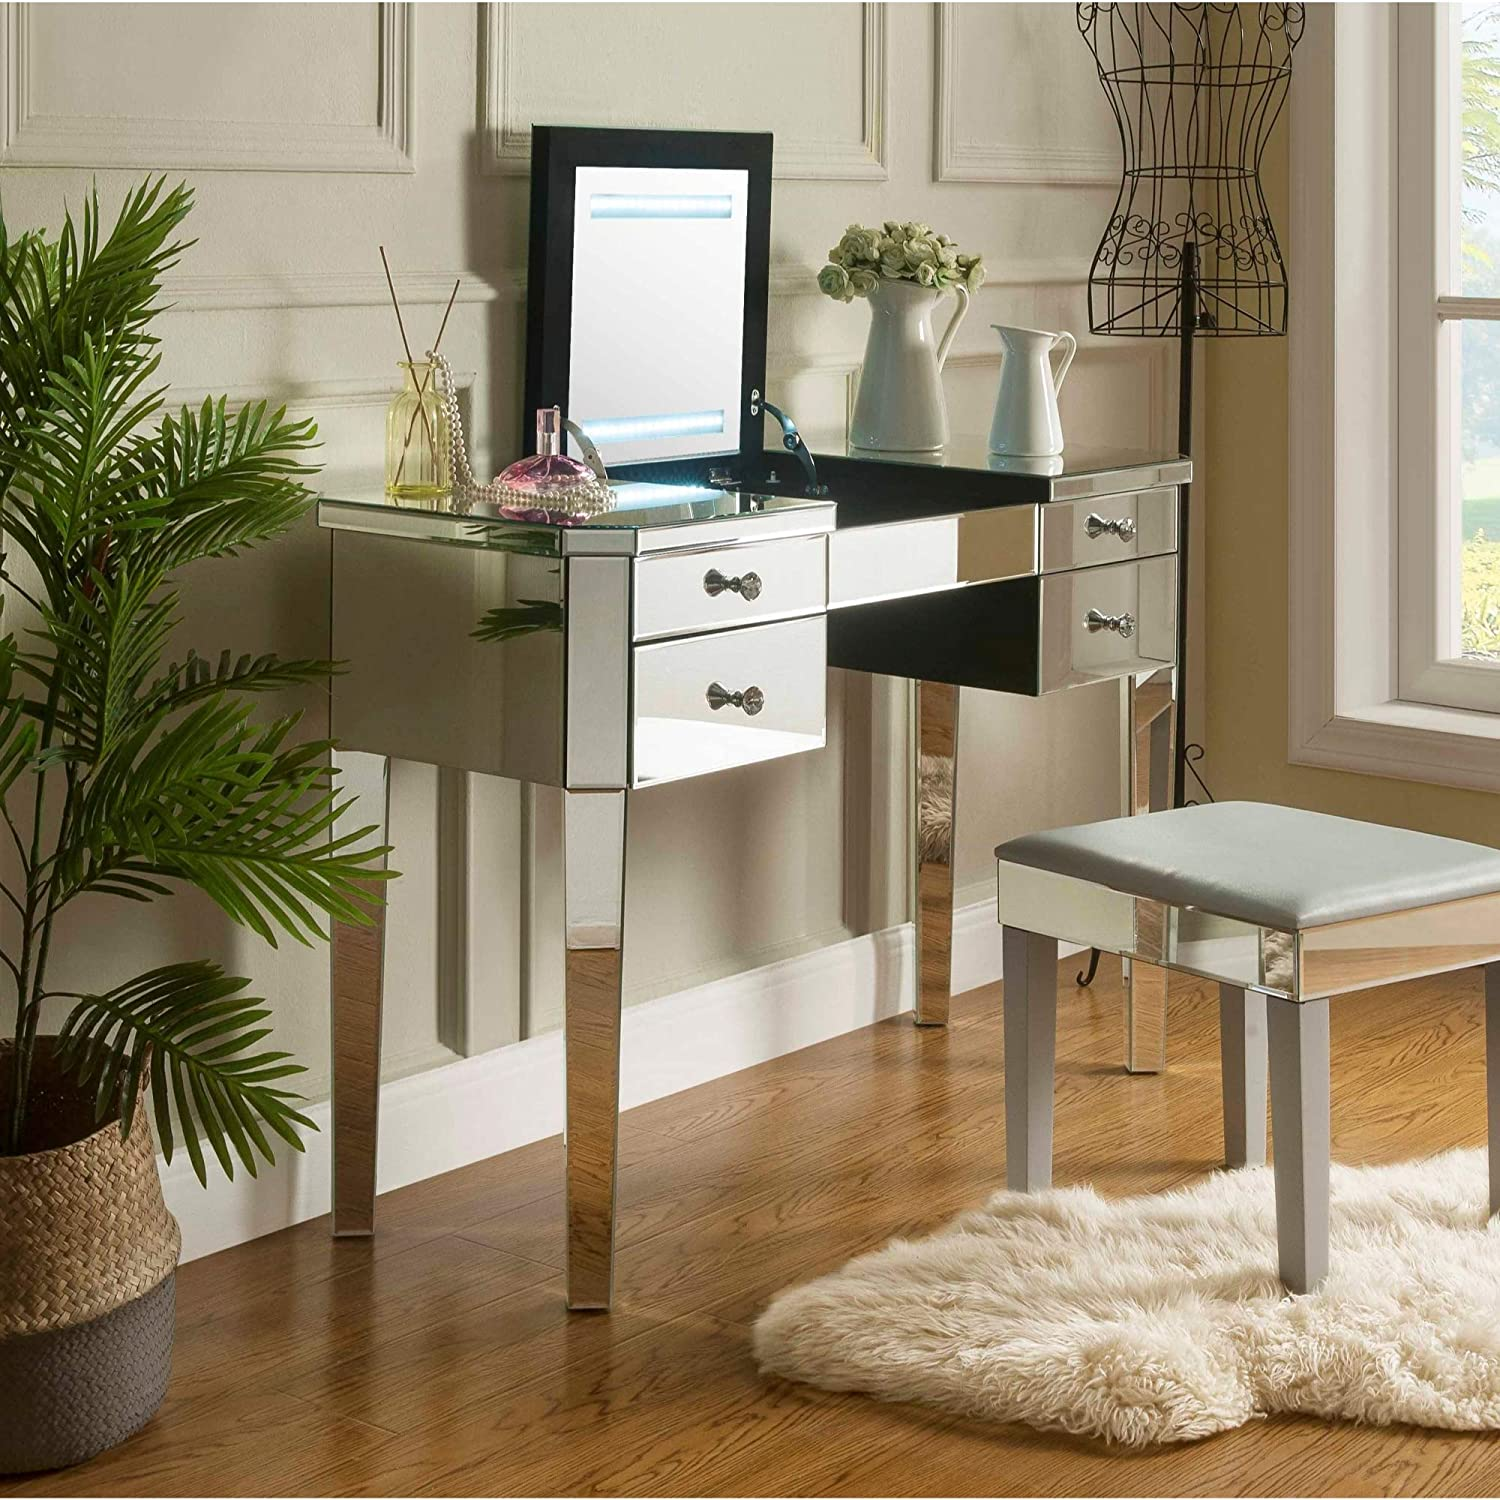 Inspired Home Juliet Modern Contemporary Mirrored 2-Drawer Vanity Table with Stool Set Black